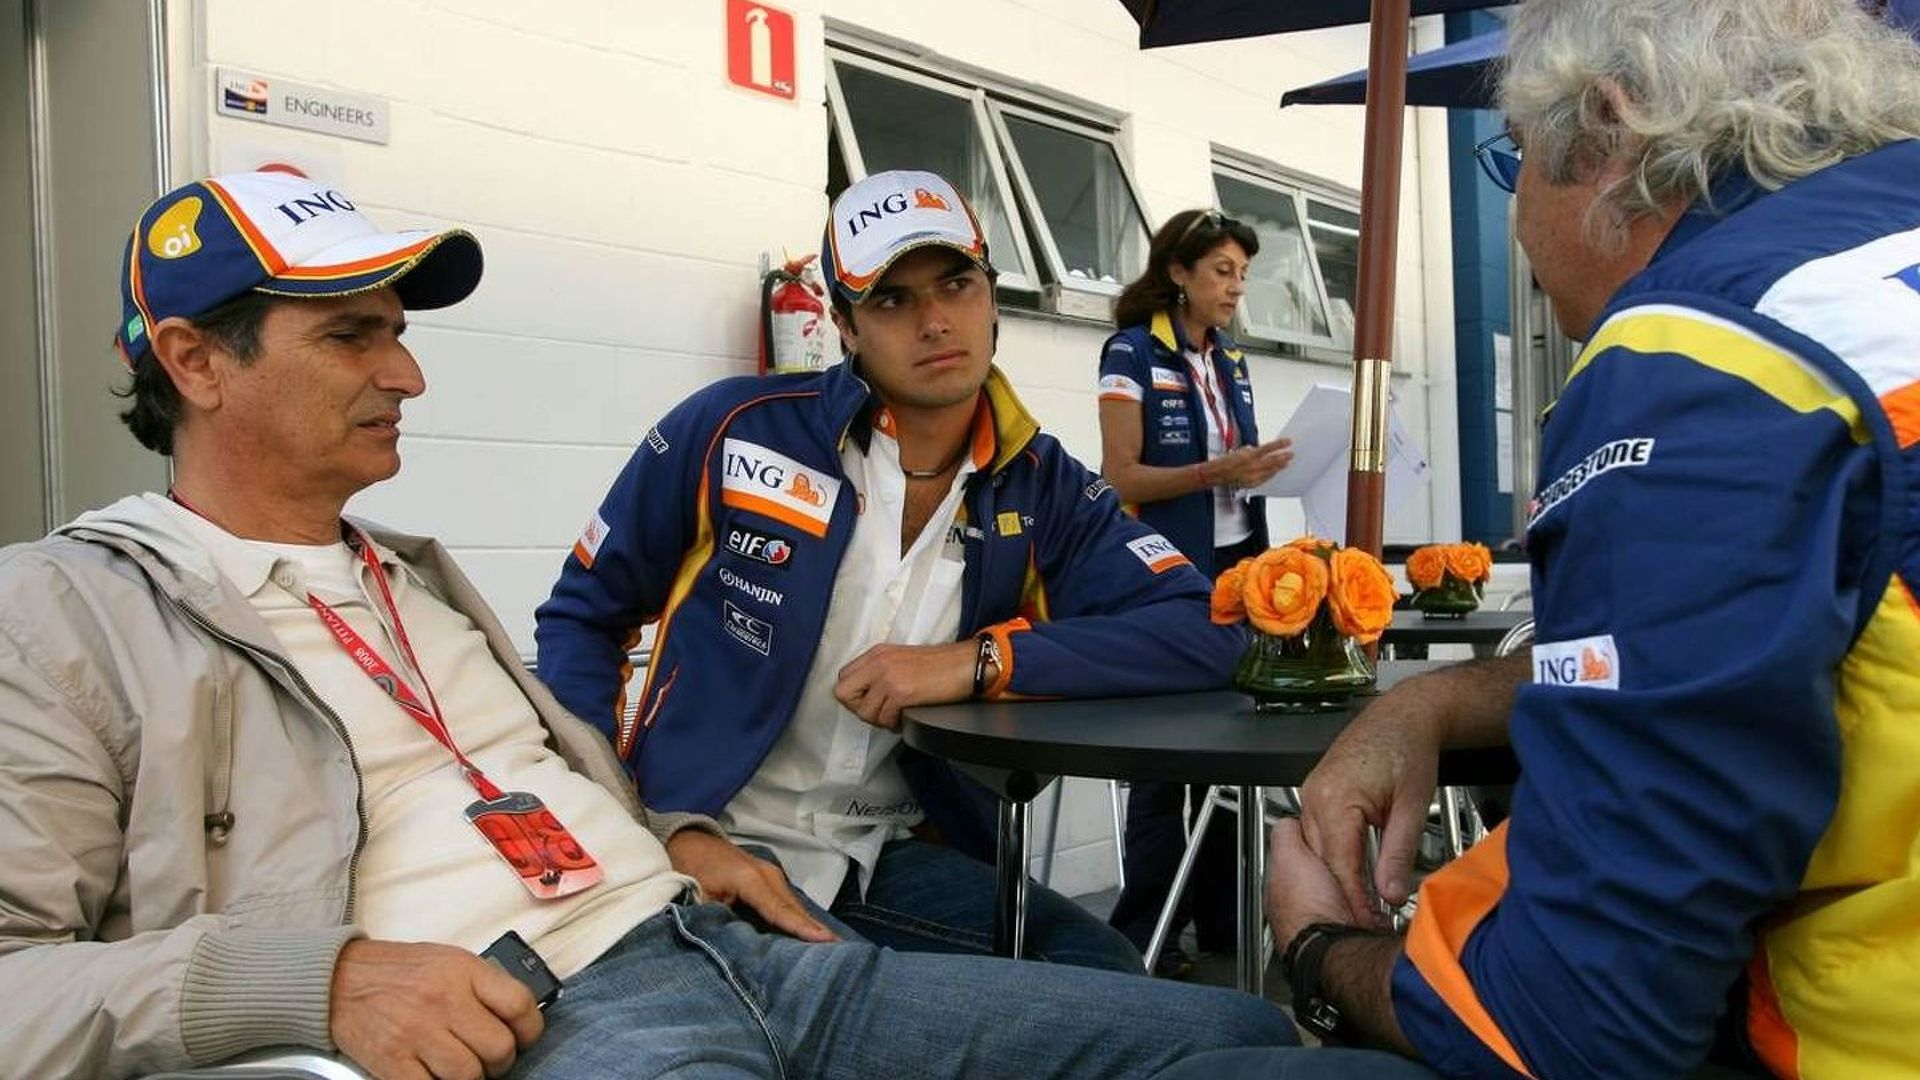 Piquet claims bullying by boss Briatore